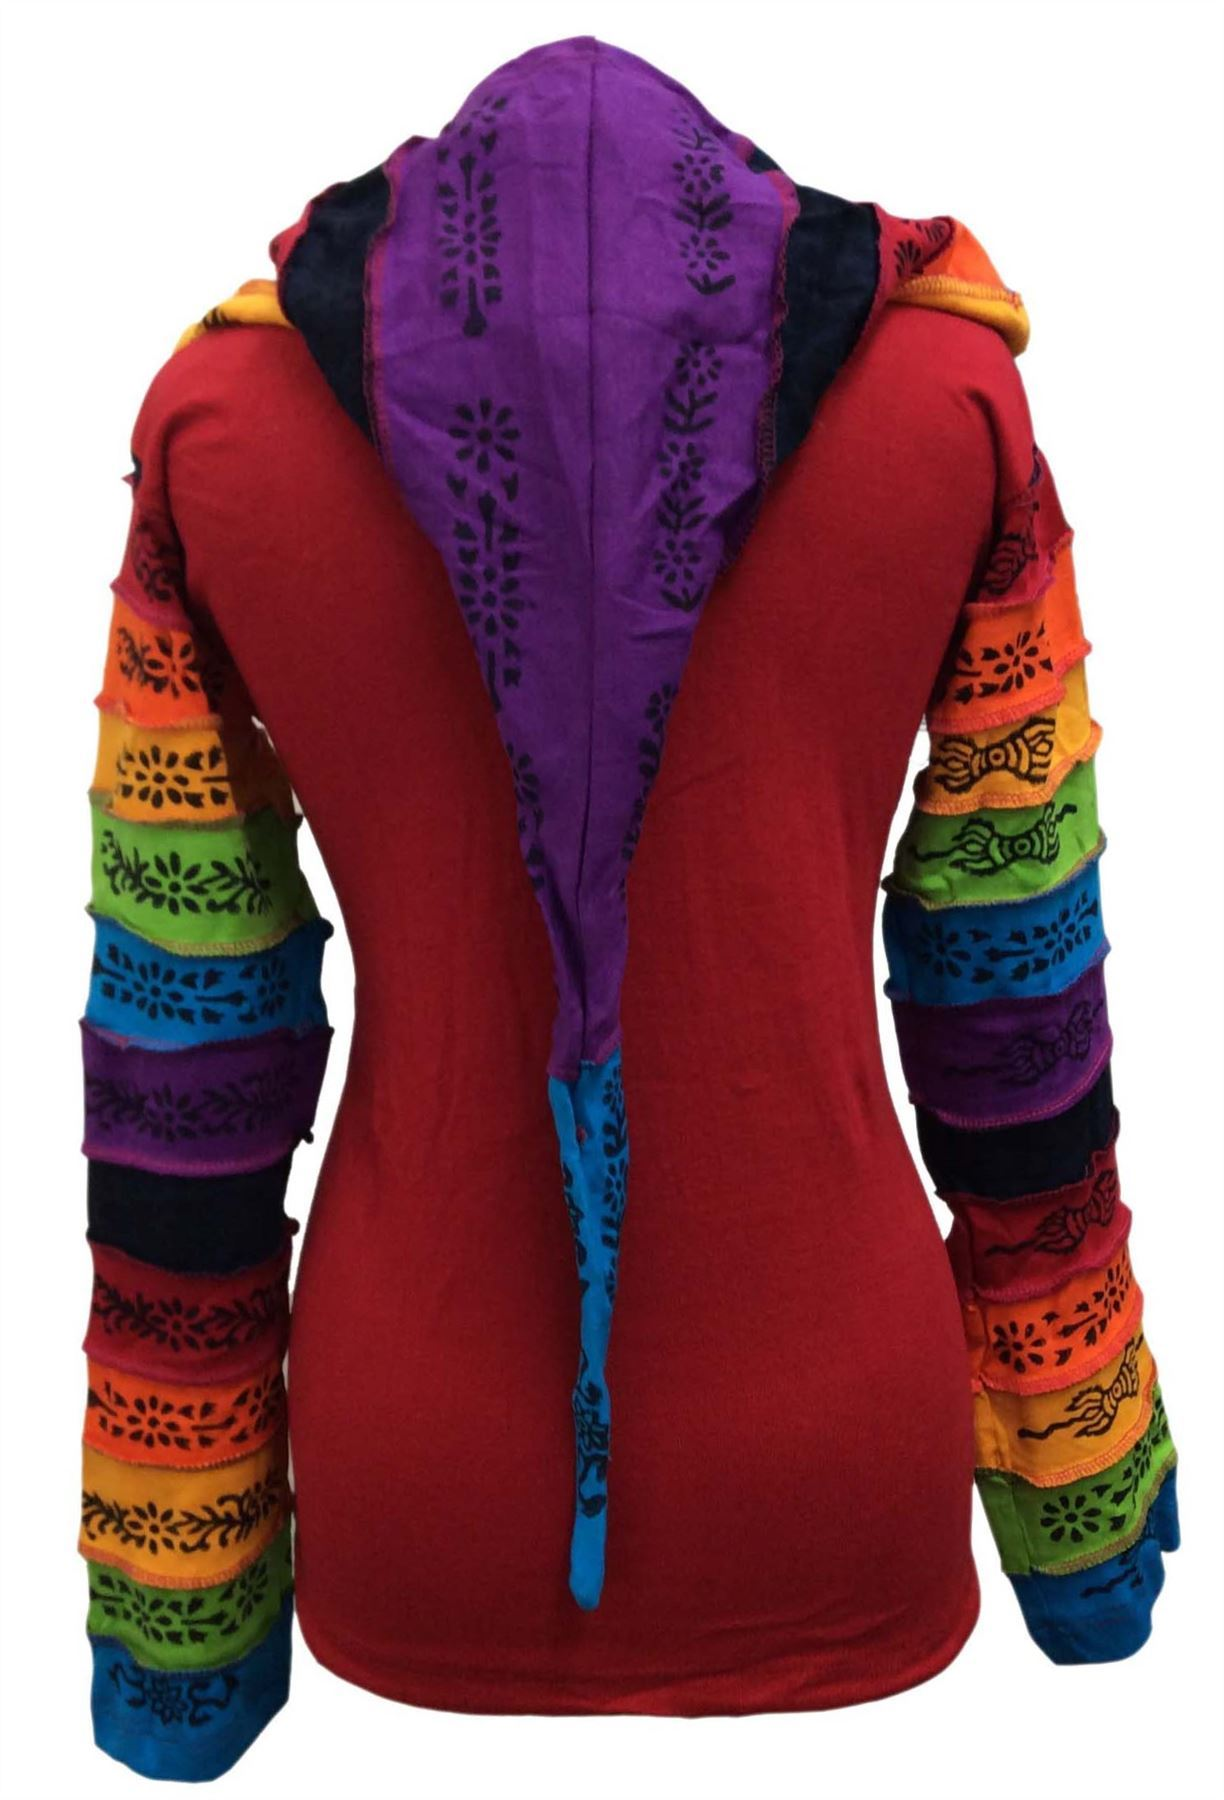 Women-Rainbow-Sleeved-Flower-Patch-Hoodie-Hippy-Light-Weight-Jacket thumbnail 16